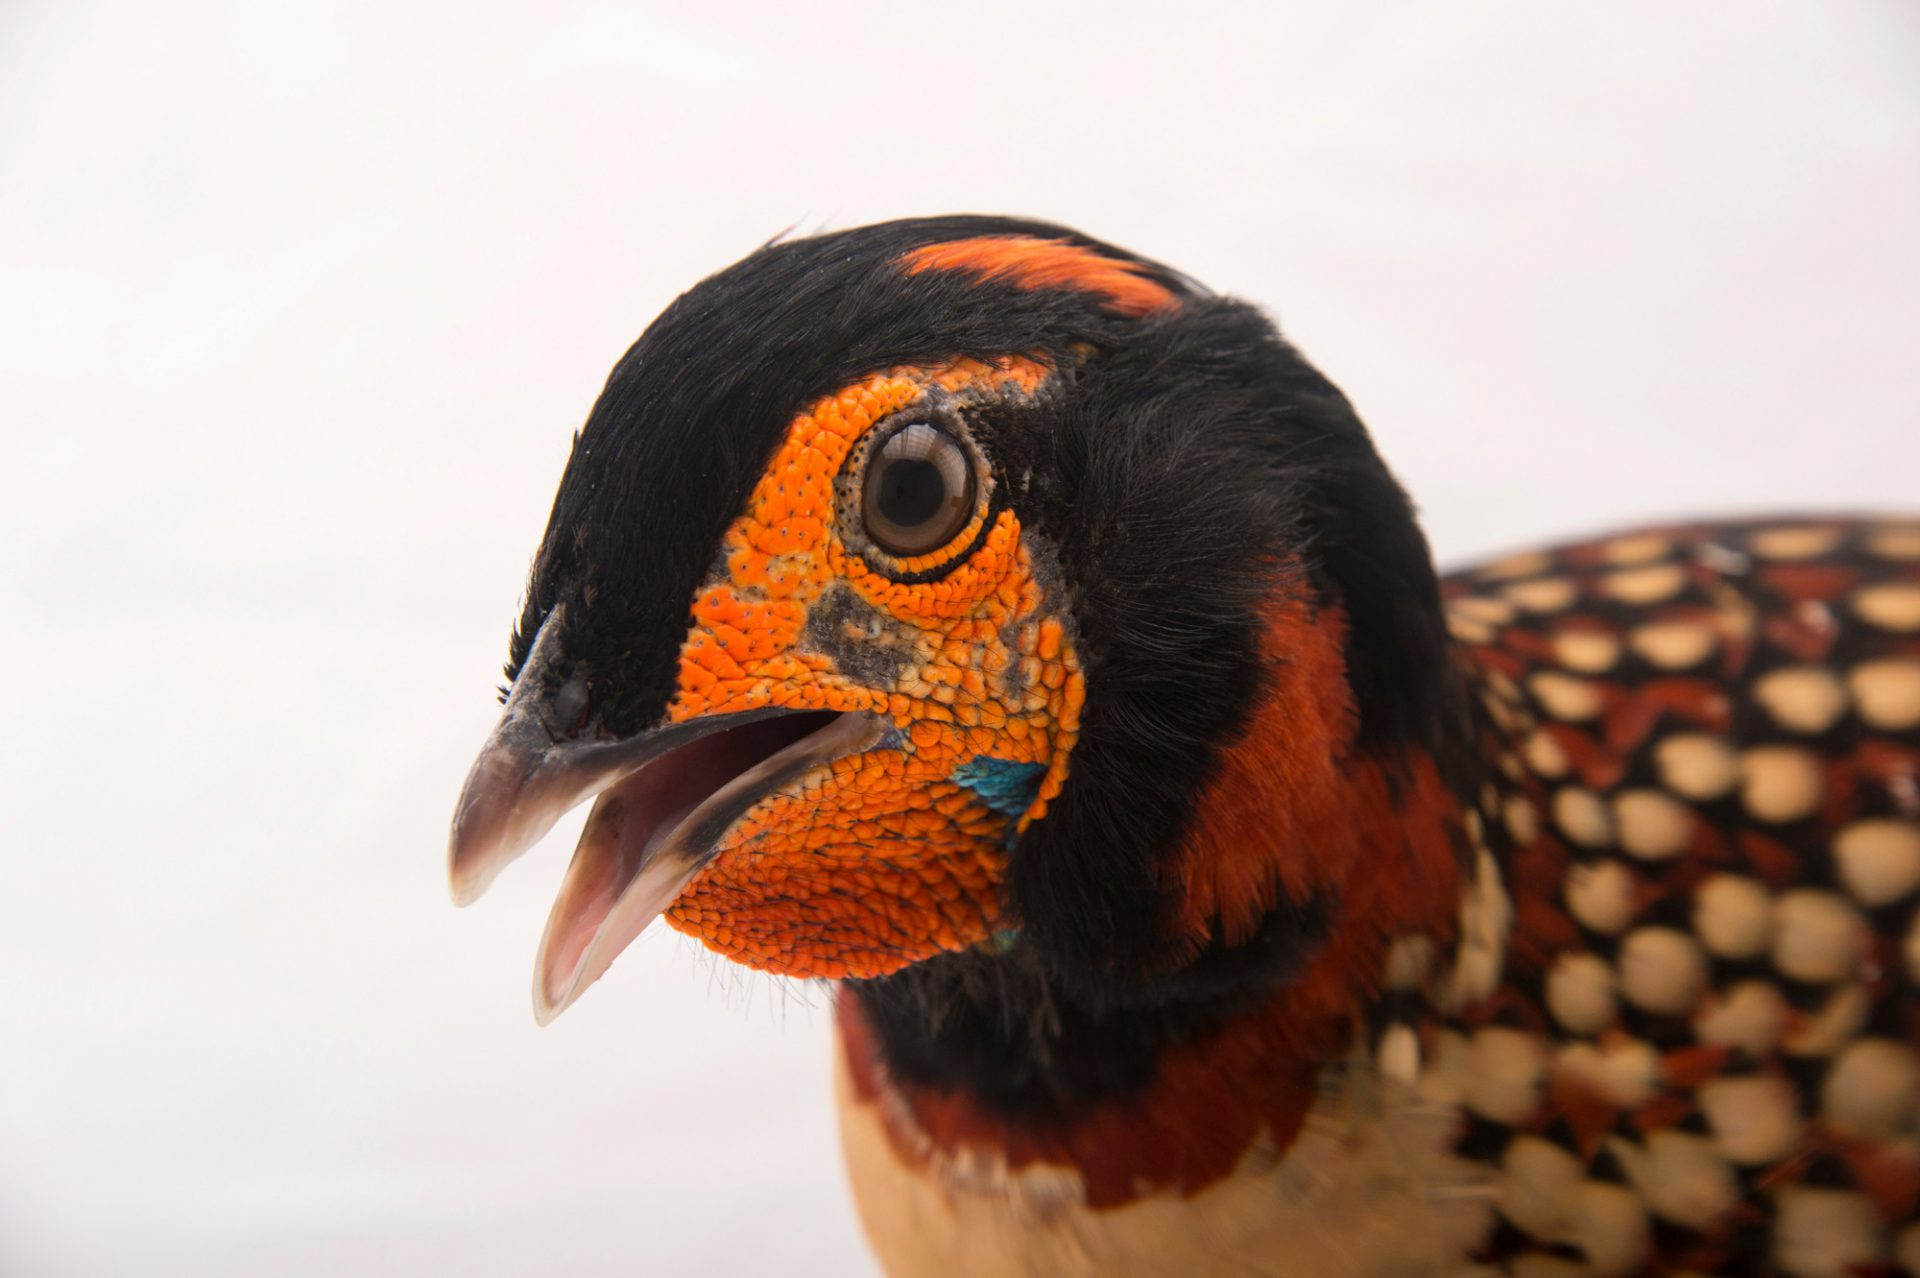 Photo: Cabot's tragopan (Tragopan caboti) at the St. Augustine Alligator Farm Zoological Park in St. Augustine, Florida.